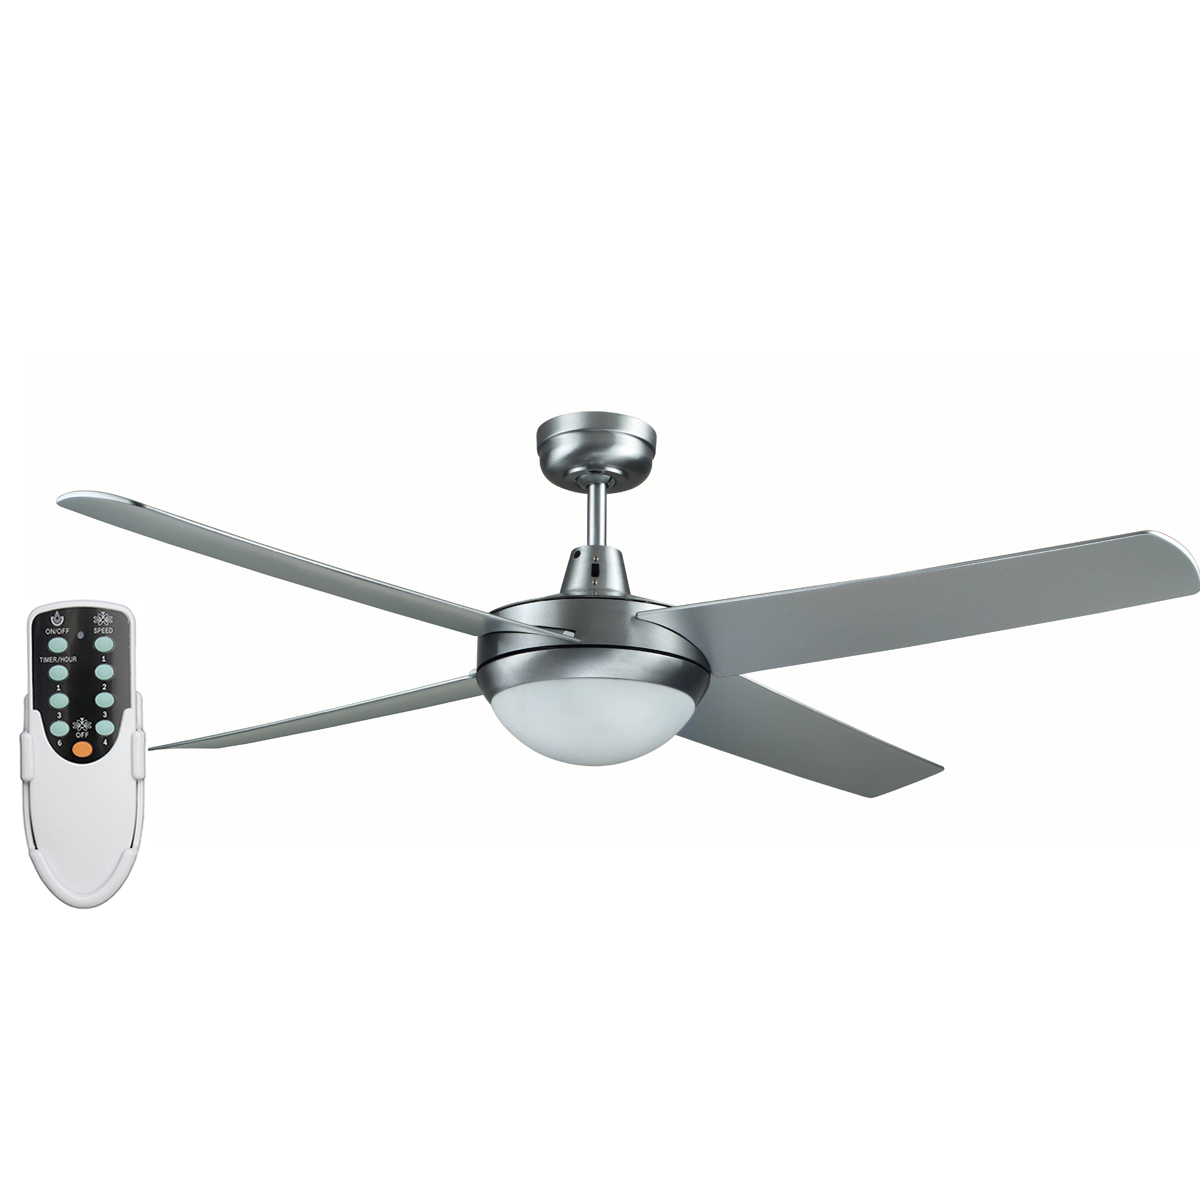 Rotor 52 Inch Led Ceiling Fan With Abs Blades In Brushed Aluminum Remote Ceiling Fan Specials